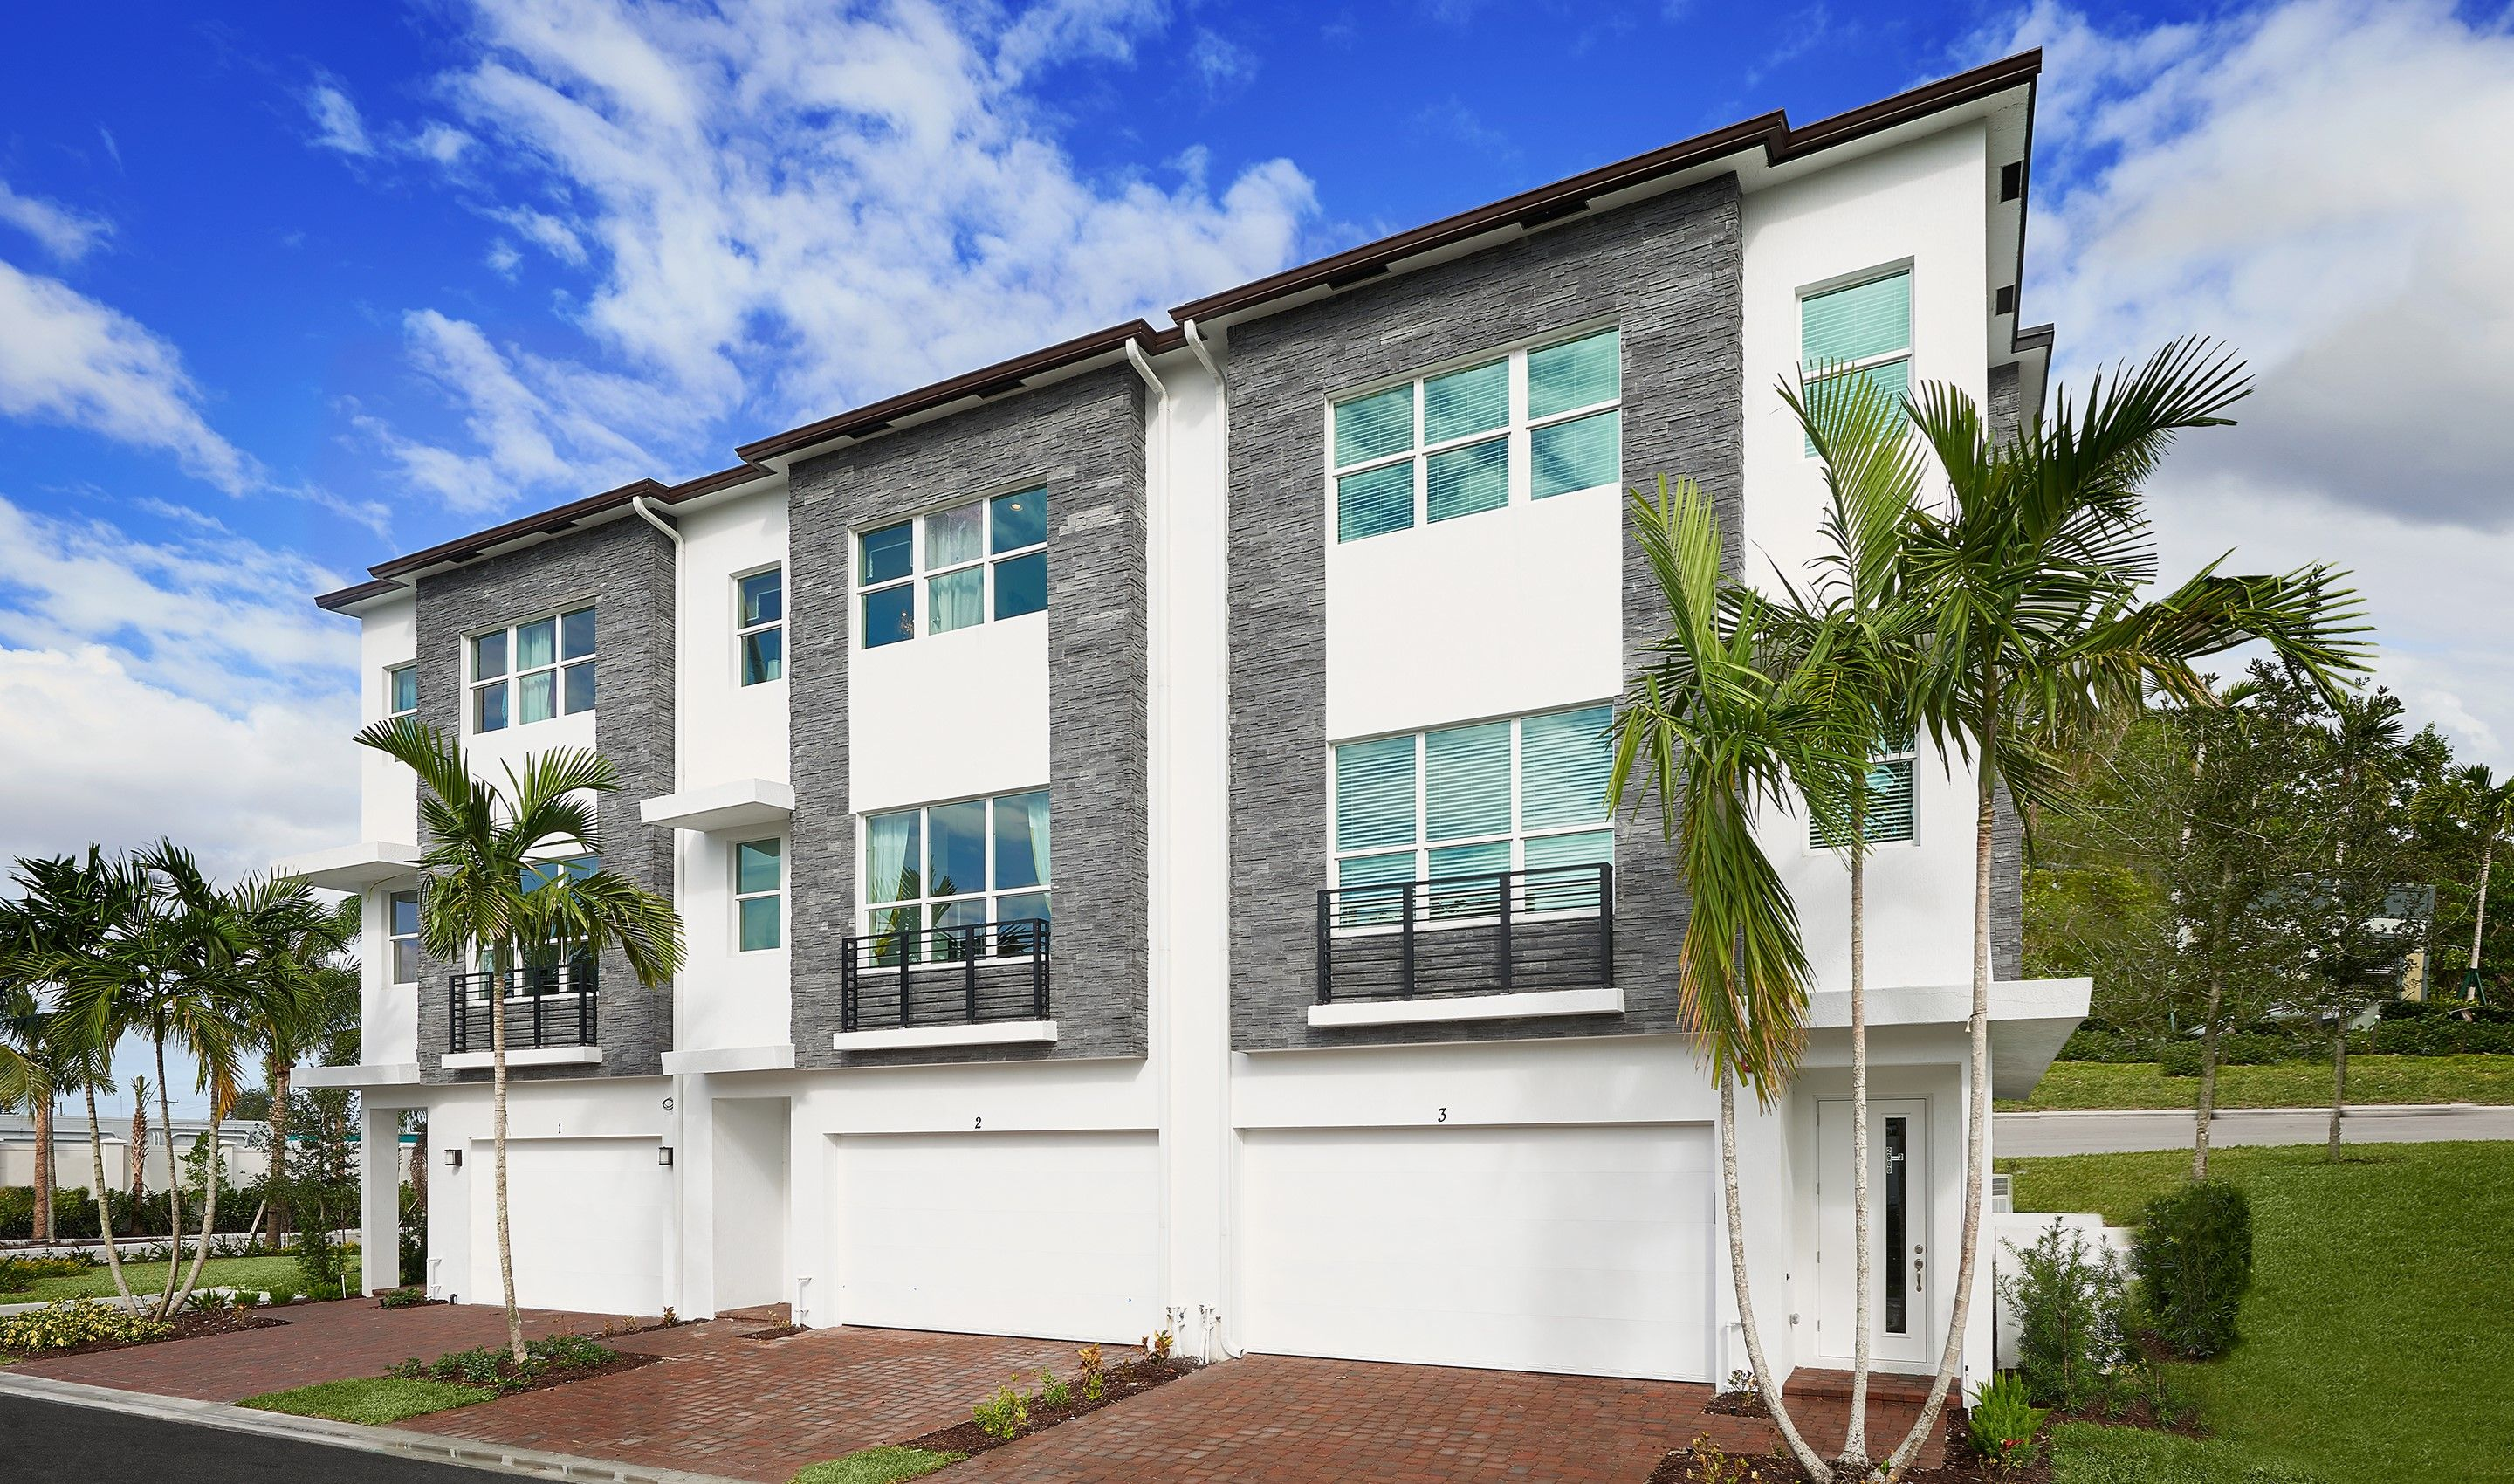 Multi Family for Sale at Selena 2900 Se 12th Terrace, Homesite 7 Oakland Park, Florida 33334 United States